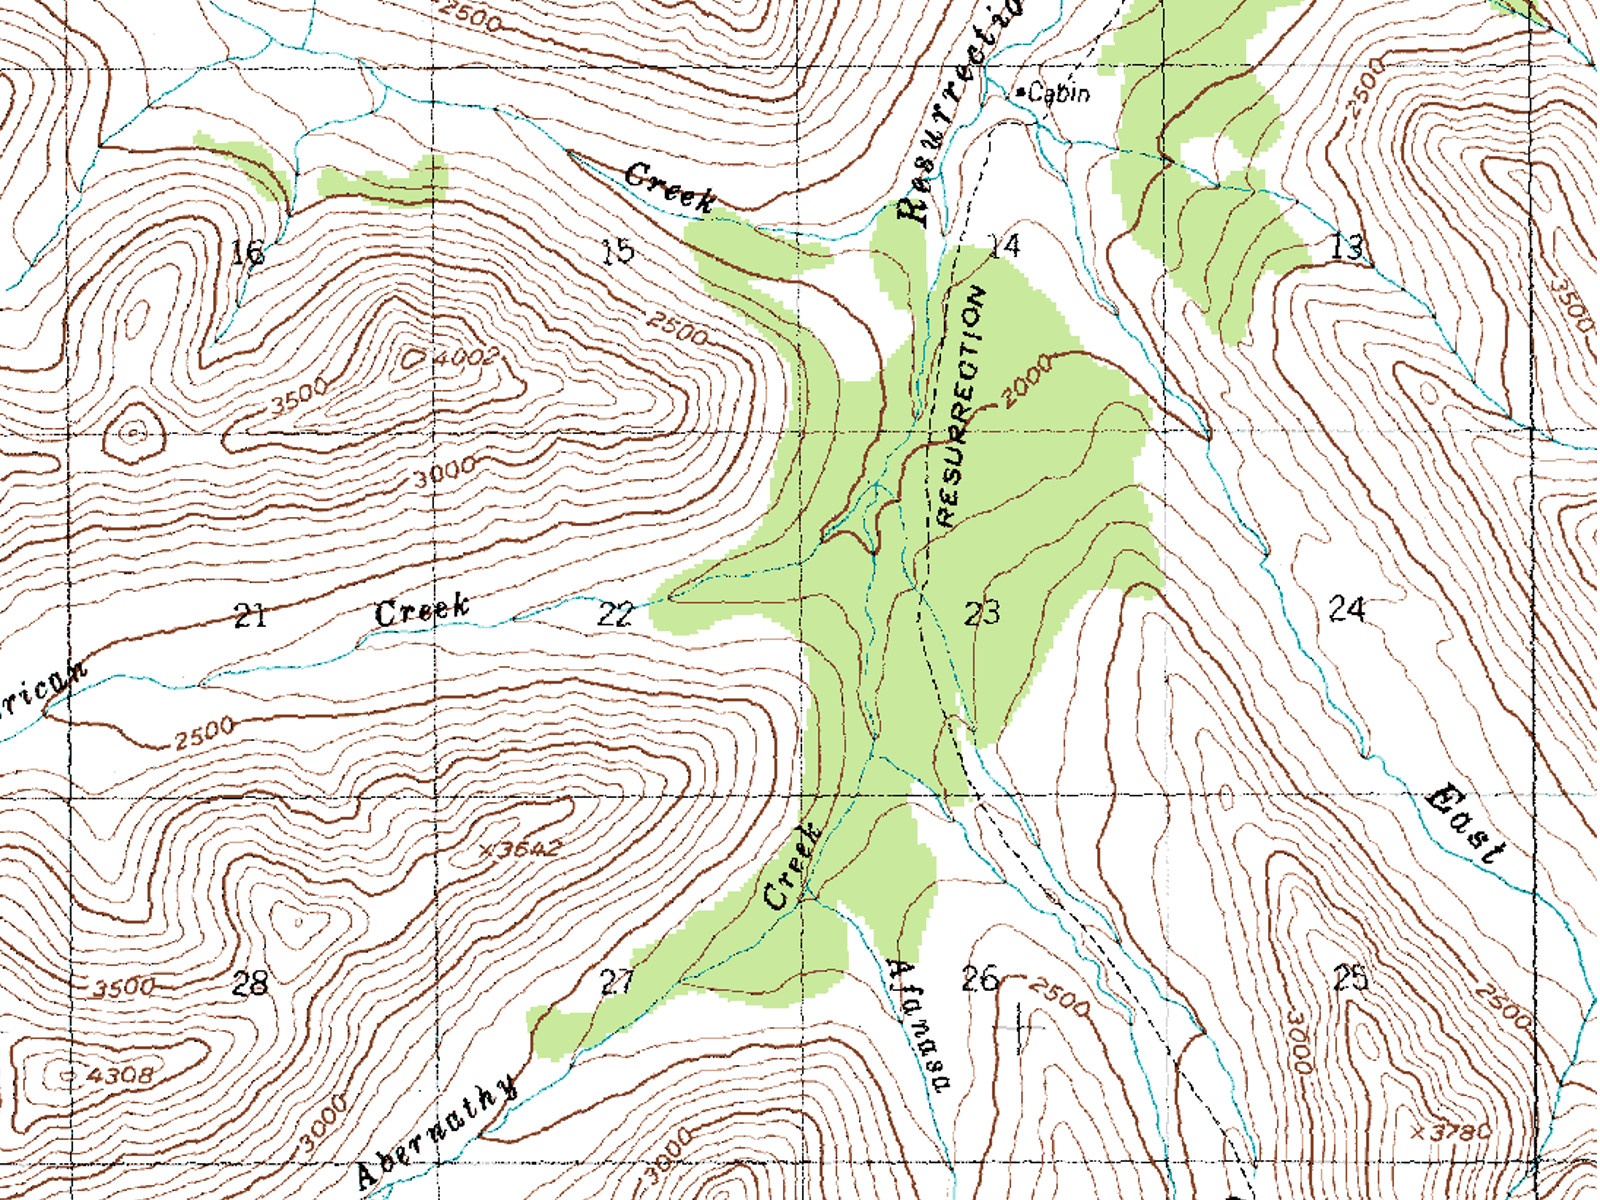 How To Interpret Topographic Maps